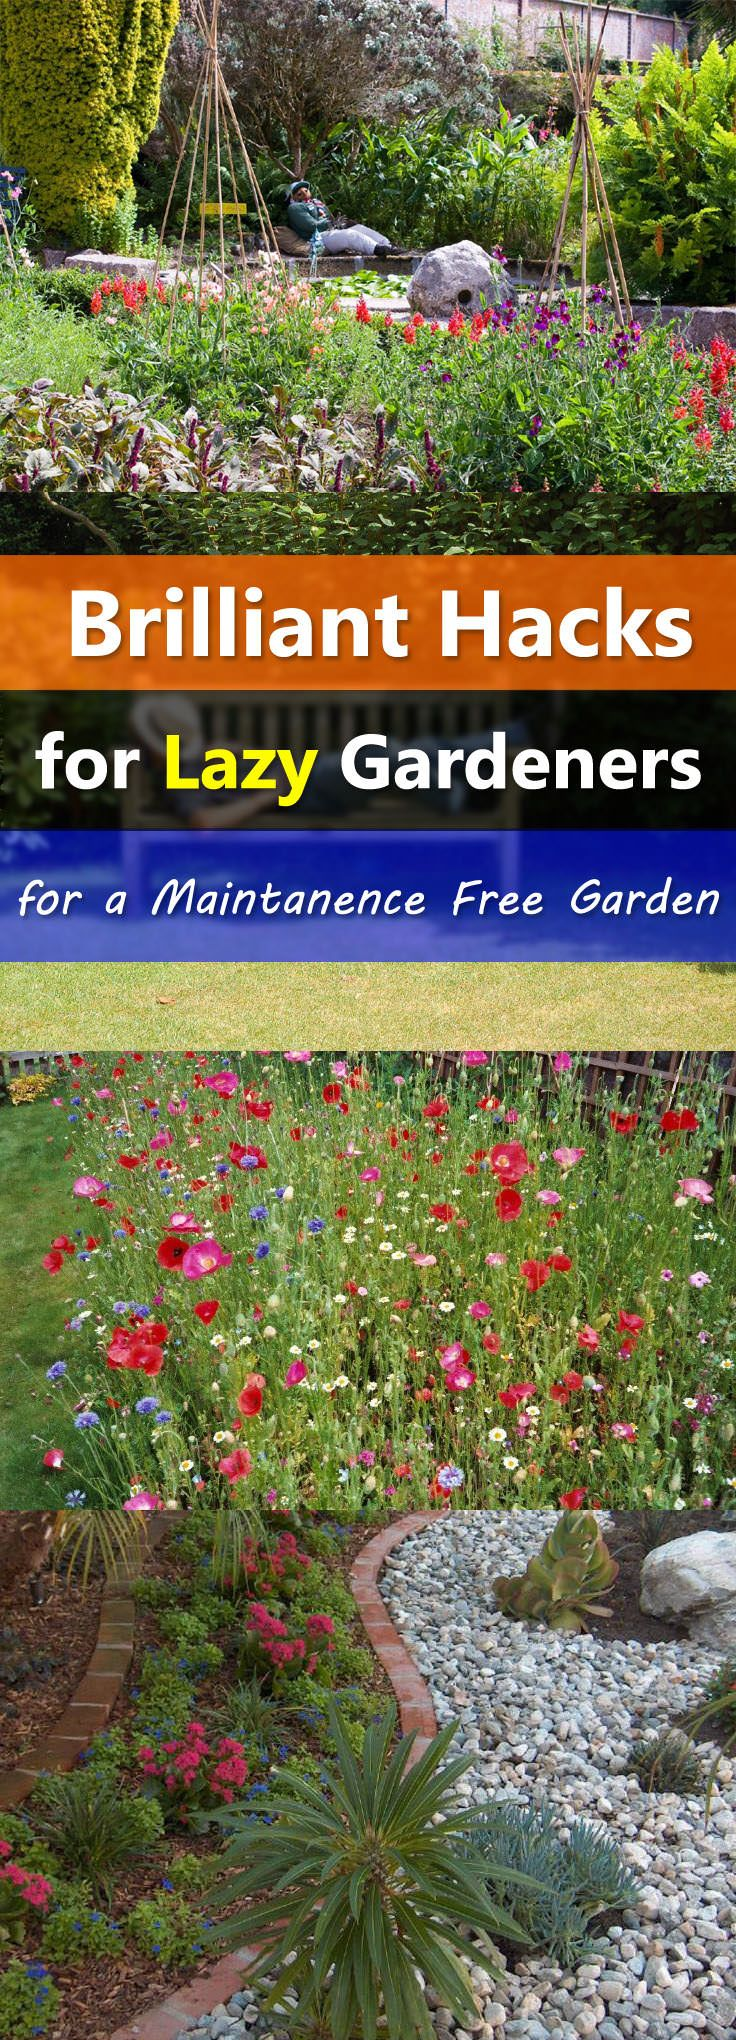 Maintenance Free Garden Ideas garden galleries Gardening Hacks For The Lazy Gardeners To Make A Low Maintenance Garden